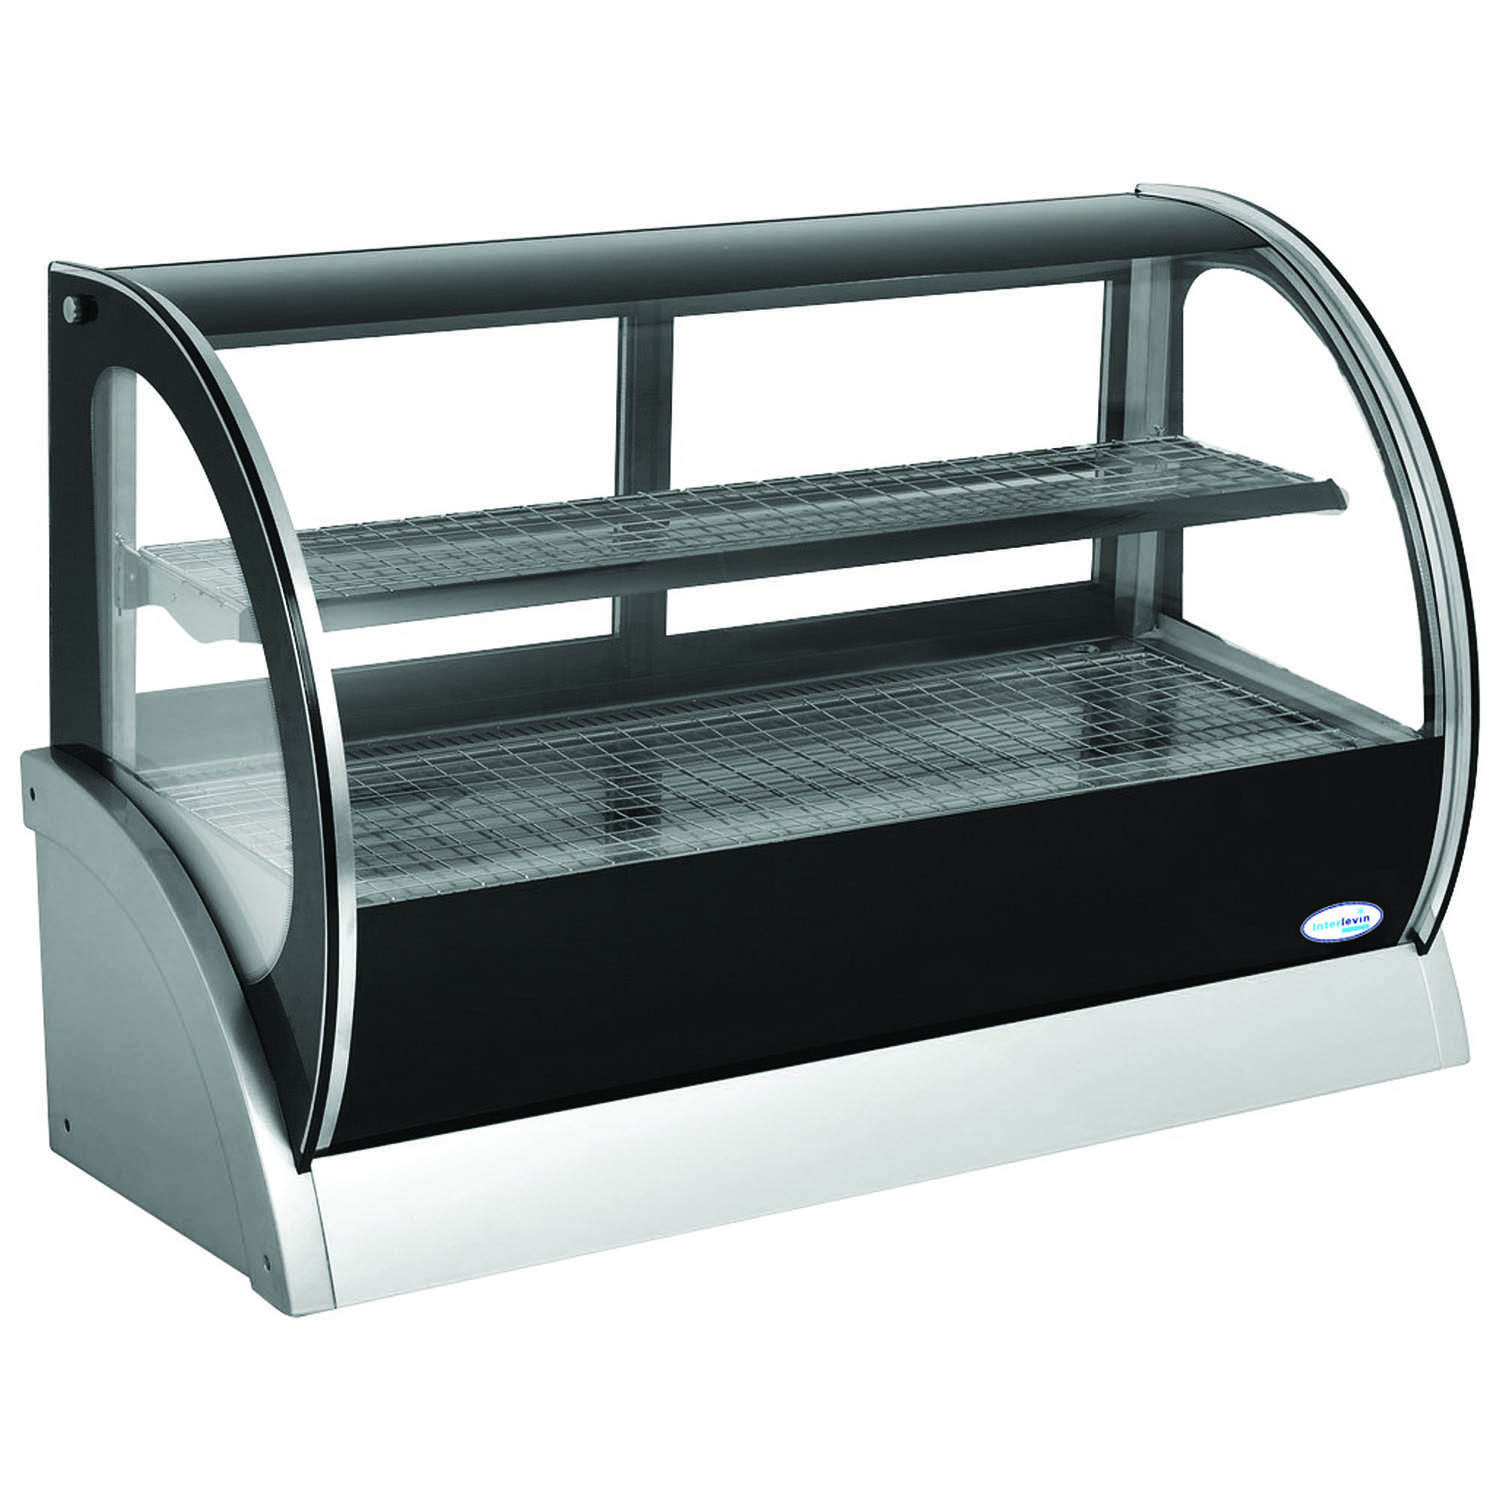 Interlevin H-S540A Counter Top Display